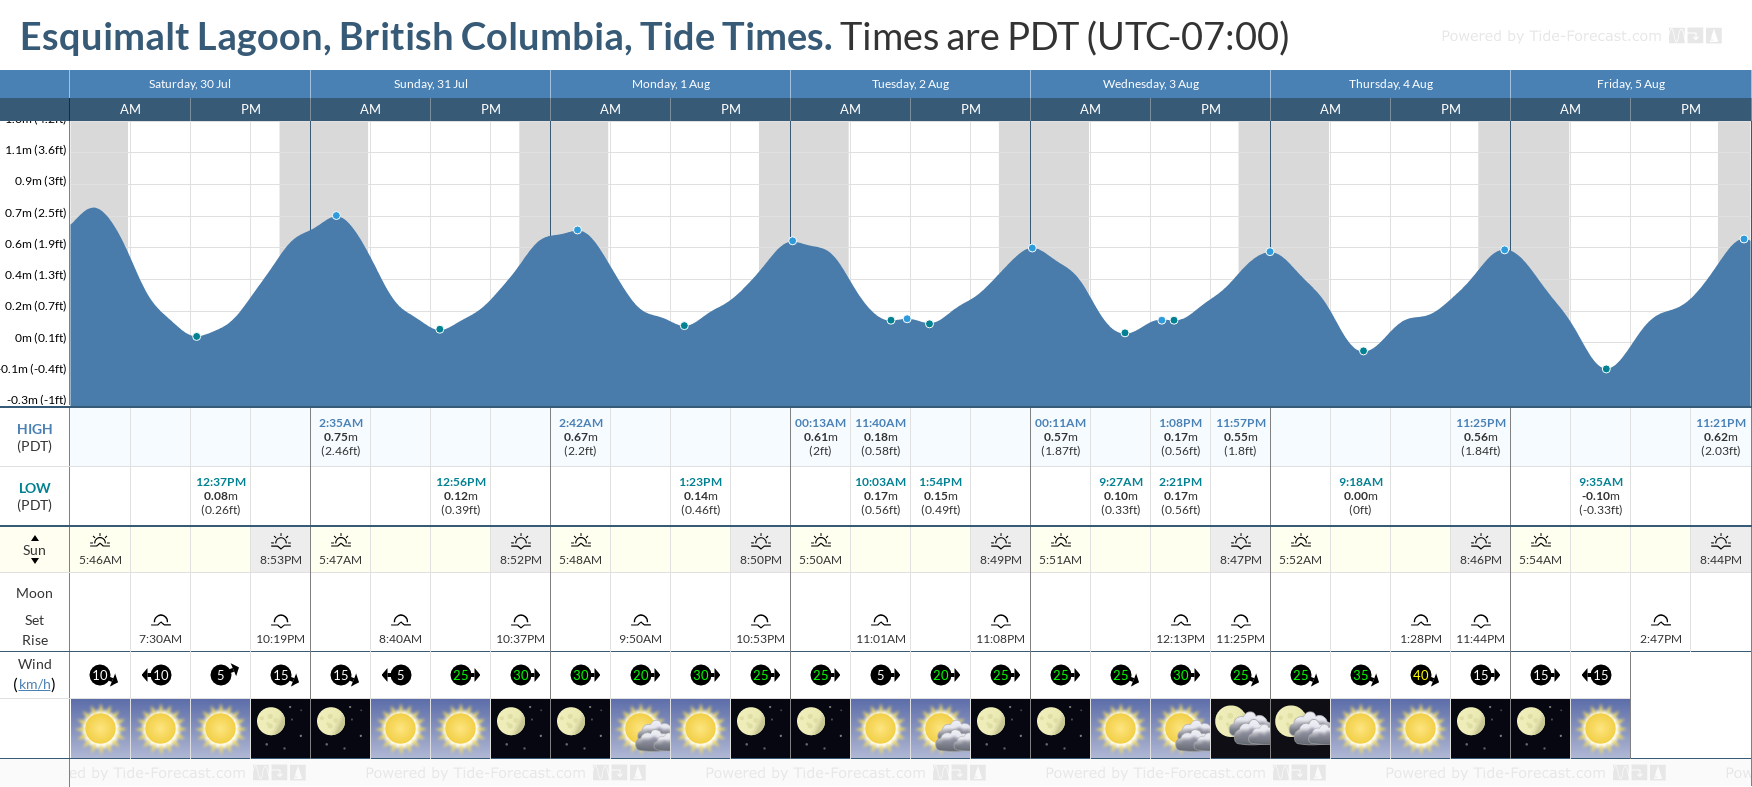 Esquimalt Lagoon, British Columbia Tide Chart including high and low tide tide times for the next 7 days